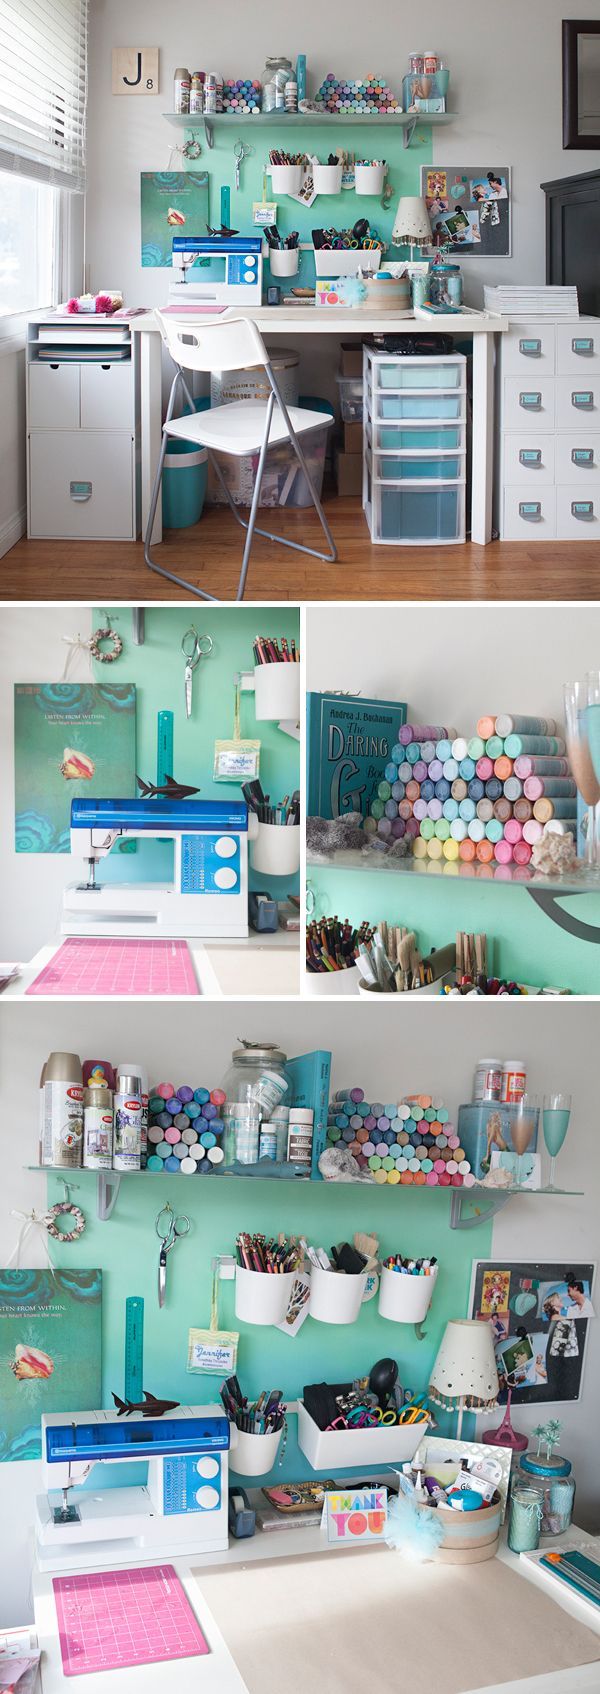 This is what crafting looks like in my house ~ Jen of SomethingTurquoise.com